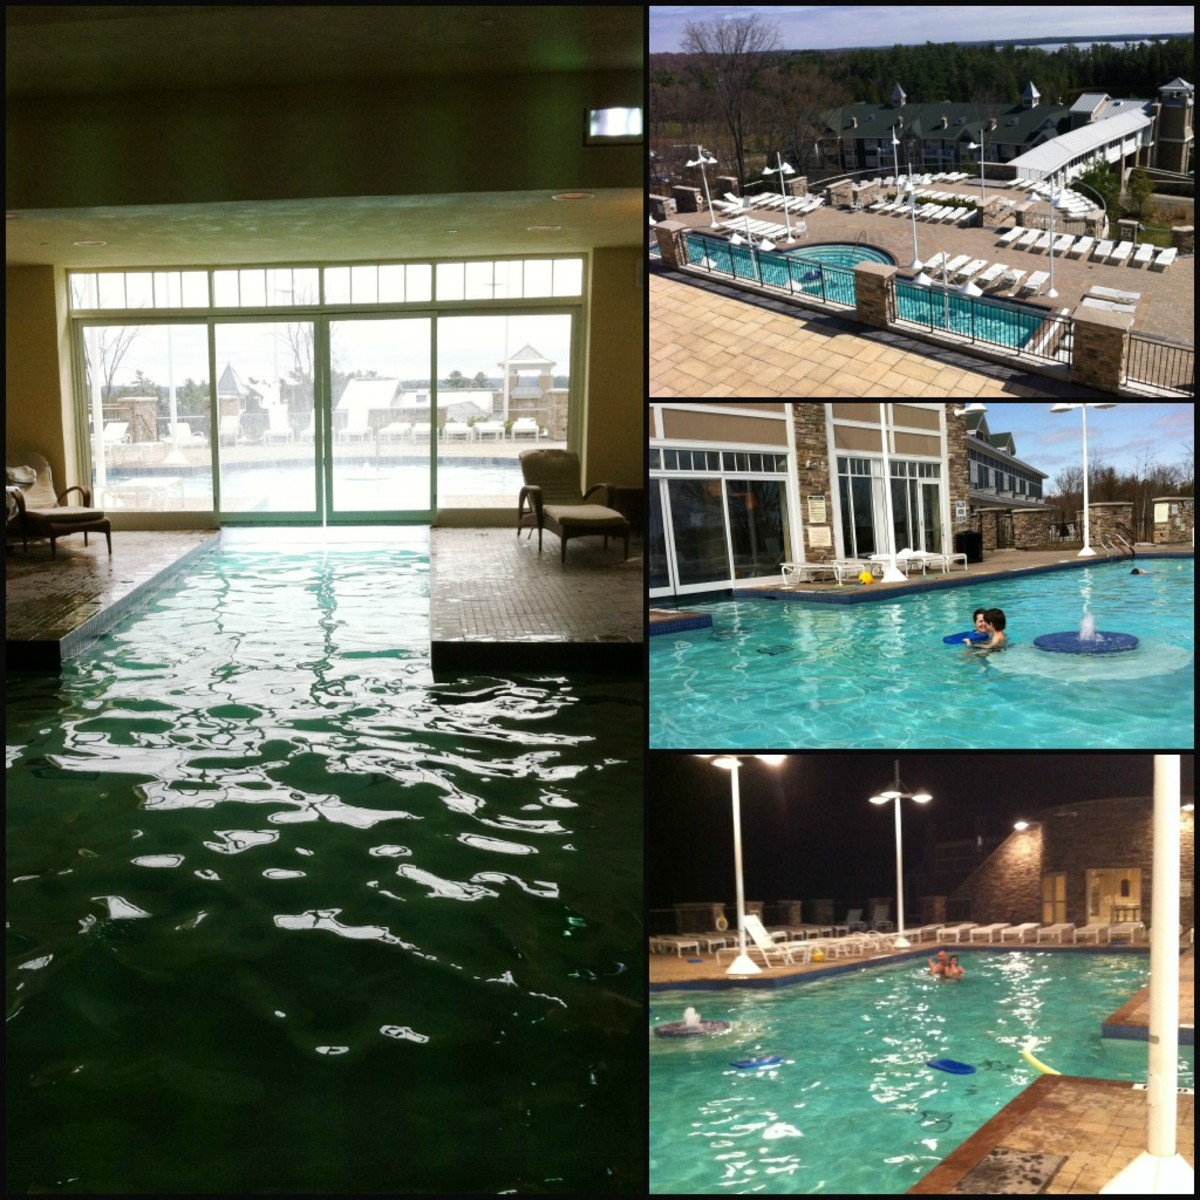 Our family loved the indoor/outdoor pool at the Marriott Rousseau resort!